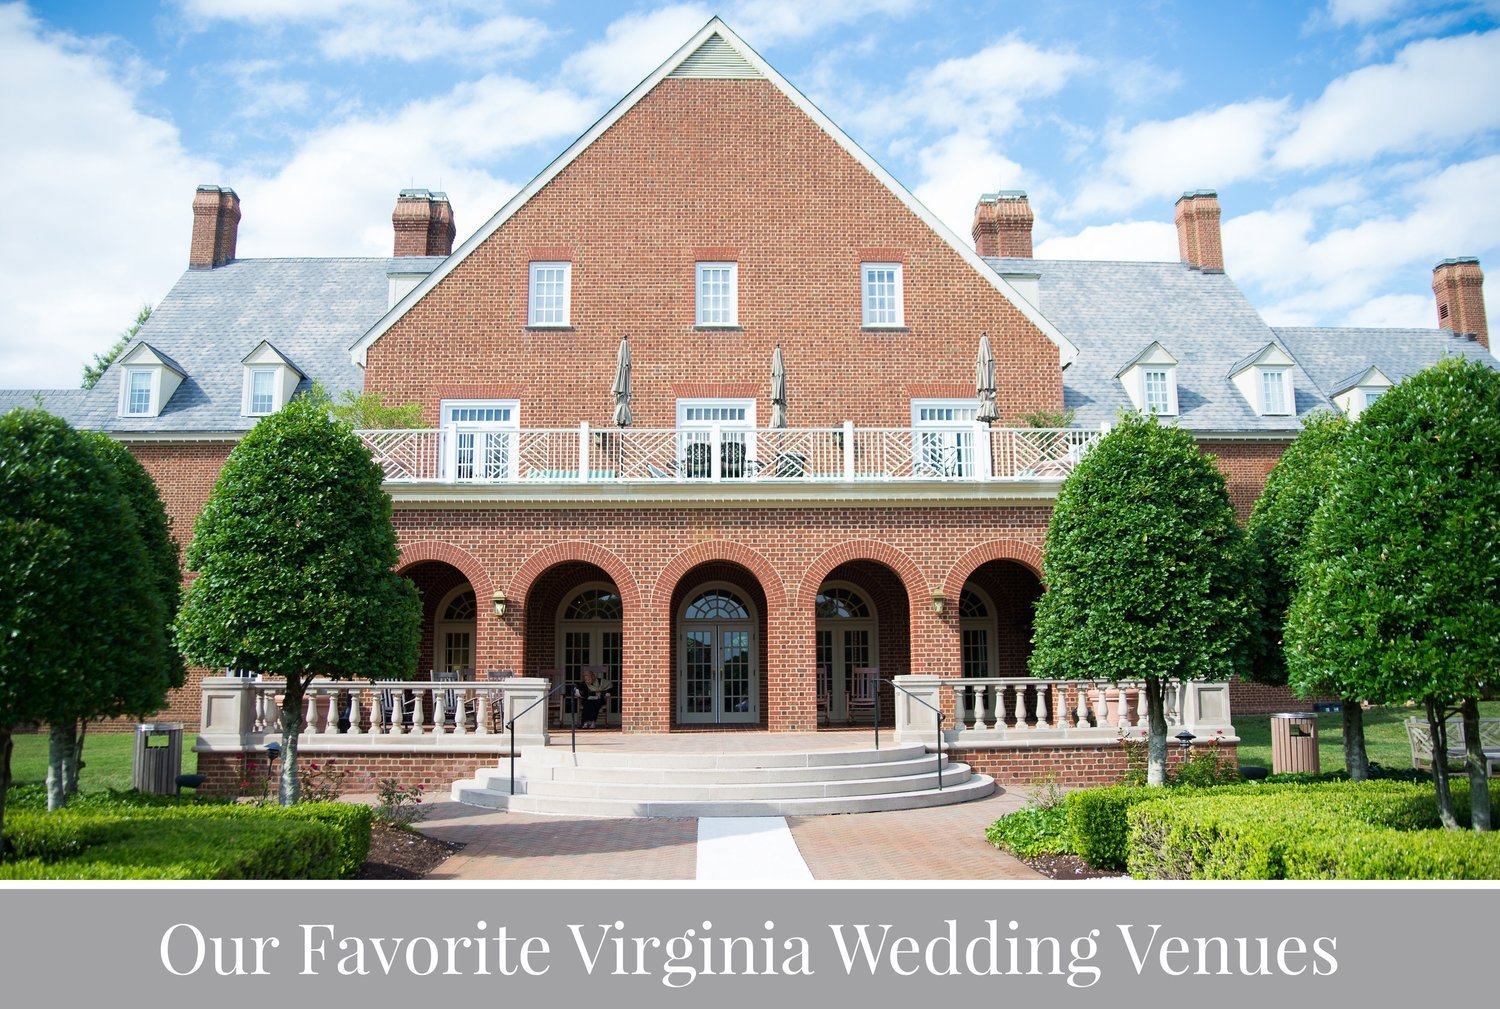 Wedding Venues In Virginia.Virginia Wedding Venues Caitlin Gerres Photography